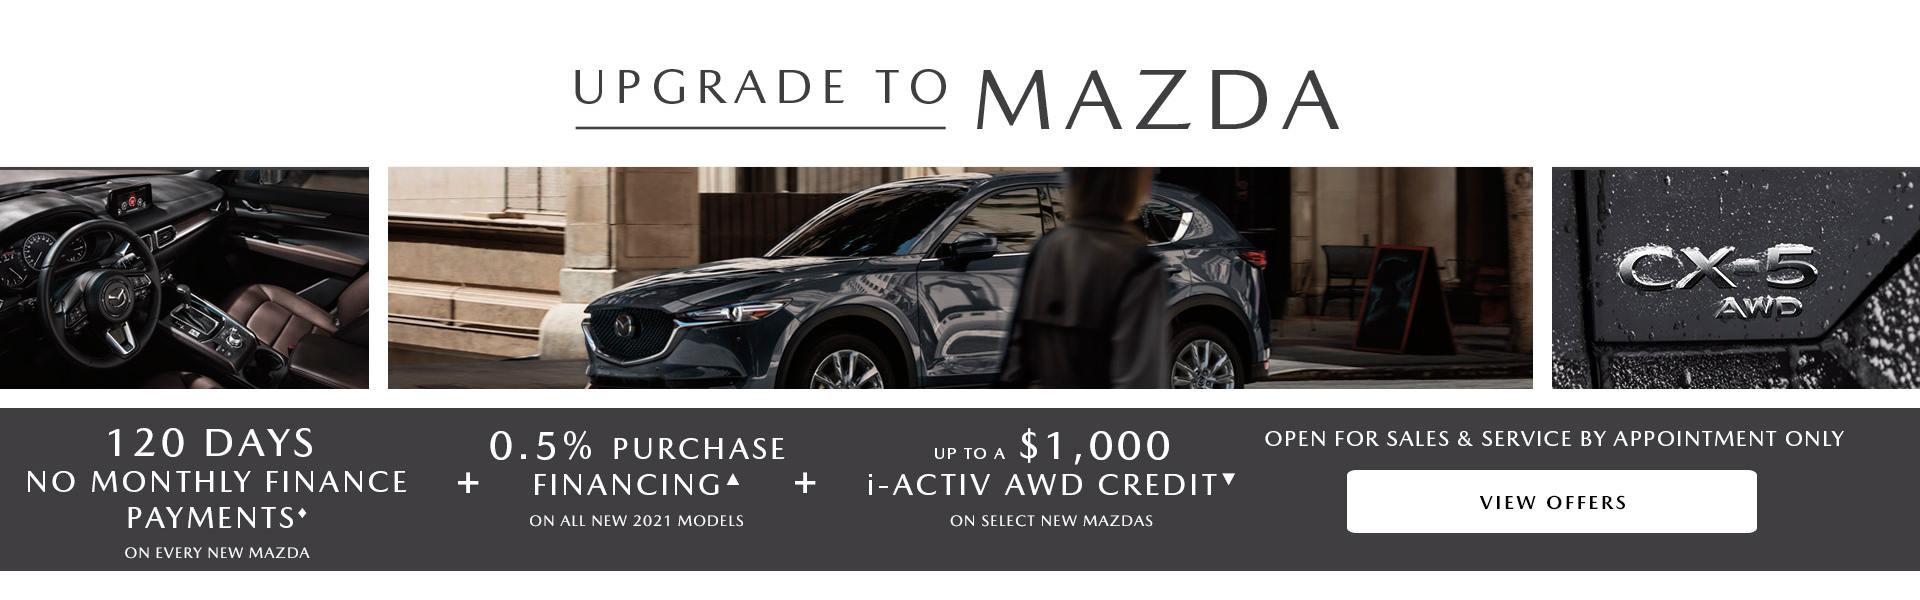 Upgrade To Mazda